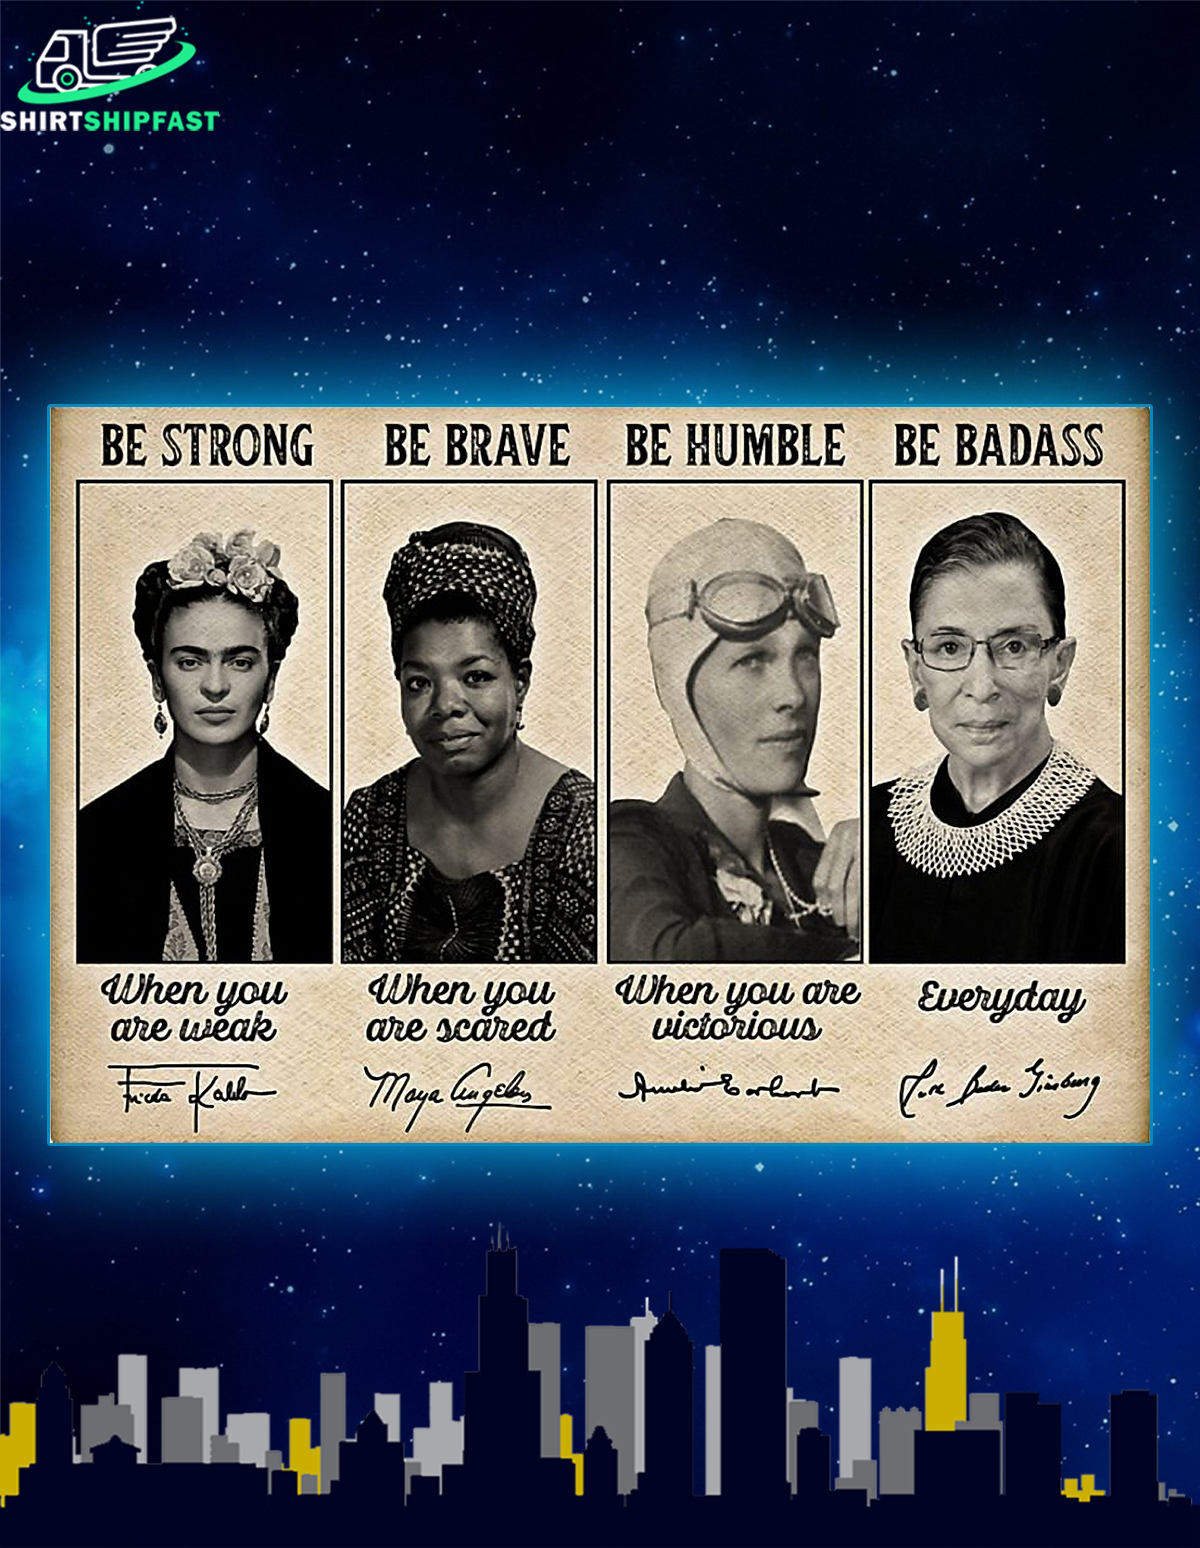 Feminists Frida kahlo RBG signature be strong poster